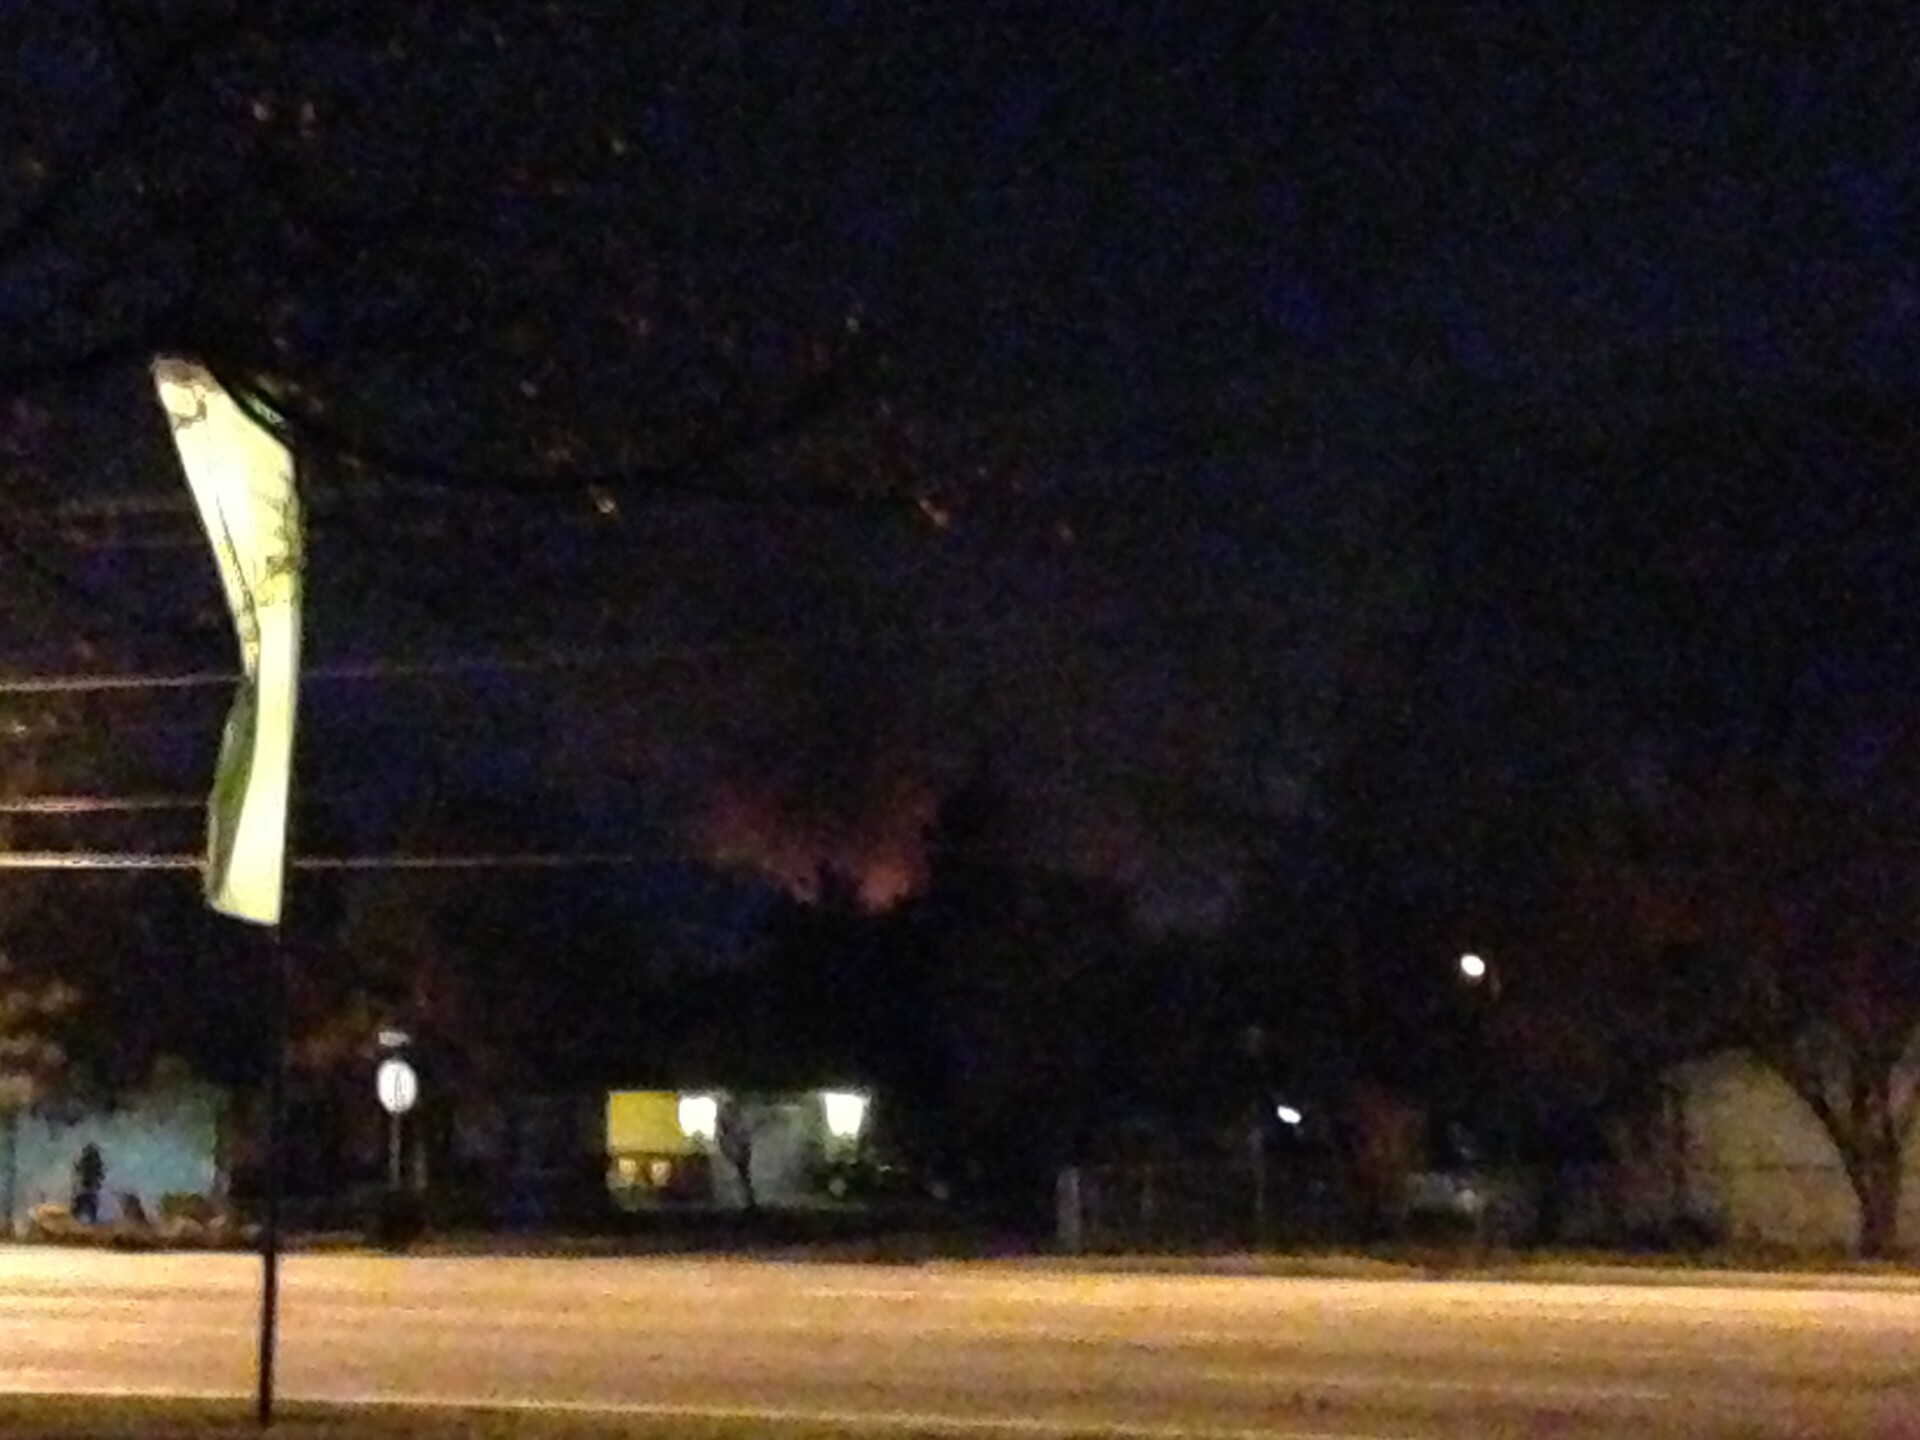 Photos: 2-alarm structure fire in Rose Park displaces family of7